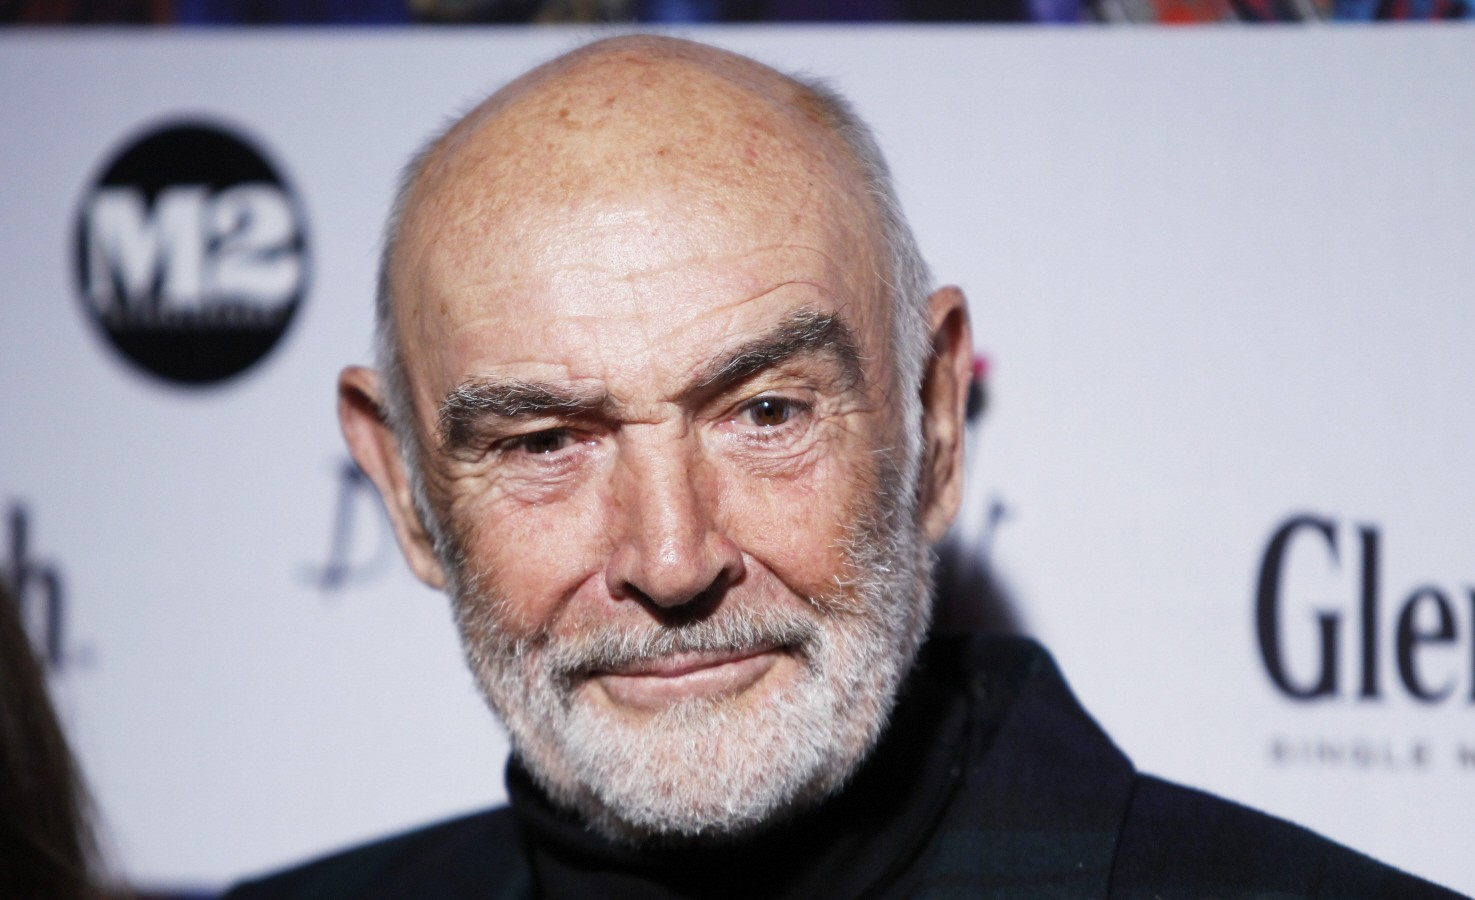 El actor Sean Connery llega al desfile de modas benéfico Dressed To Kilt en Nueva York